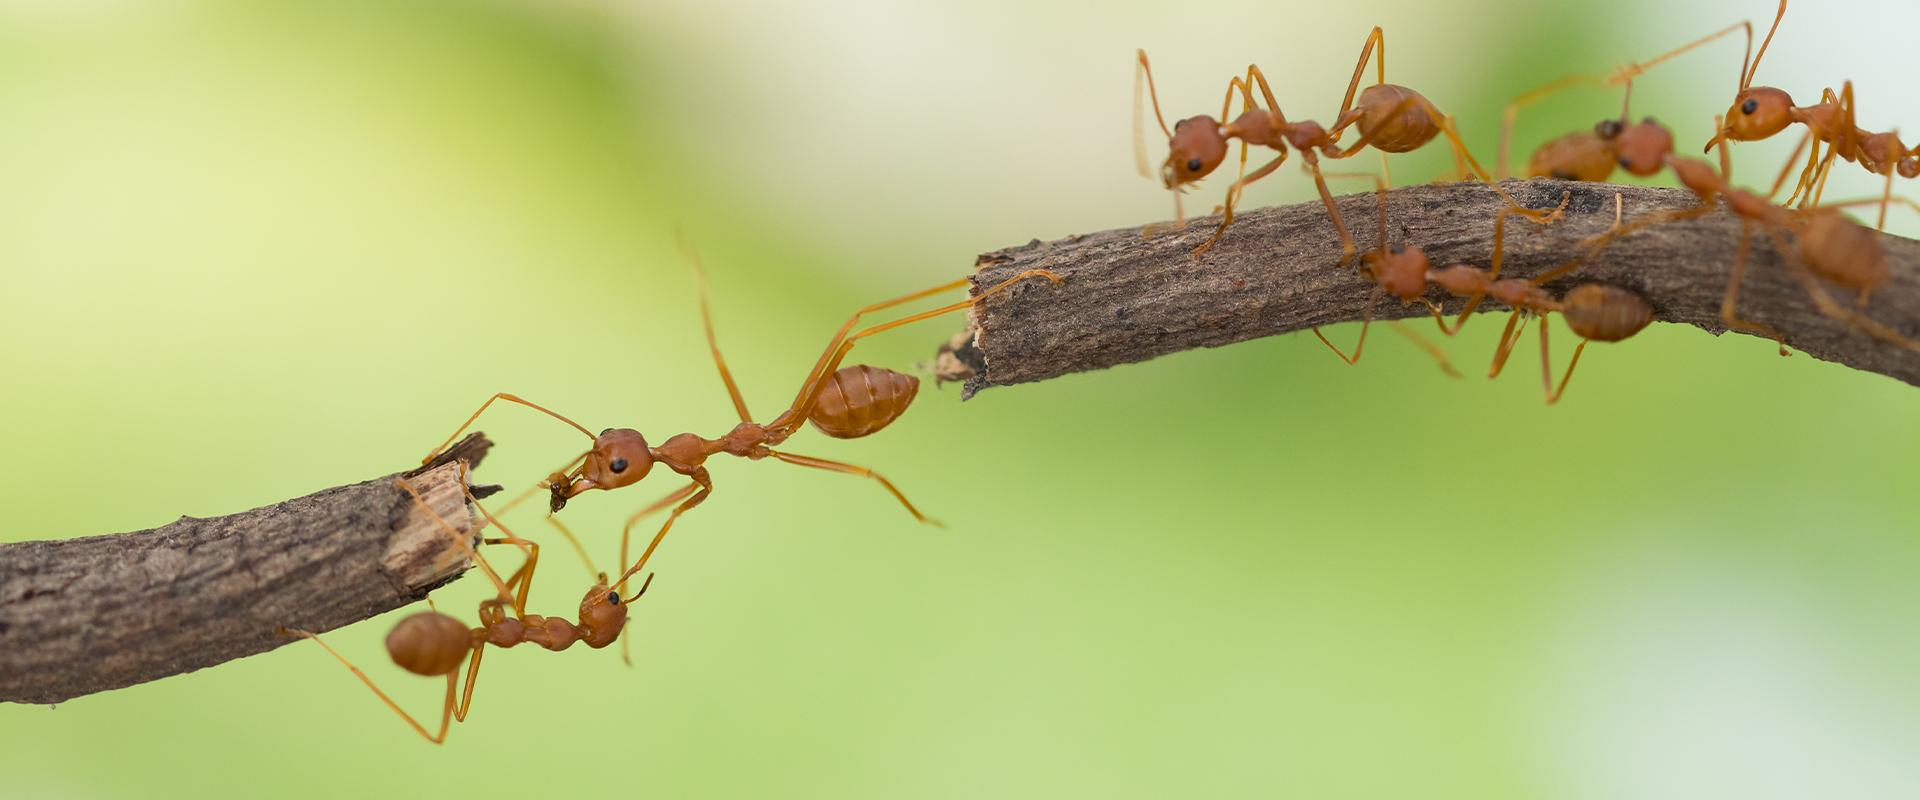 fire ant on branch